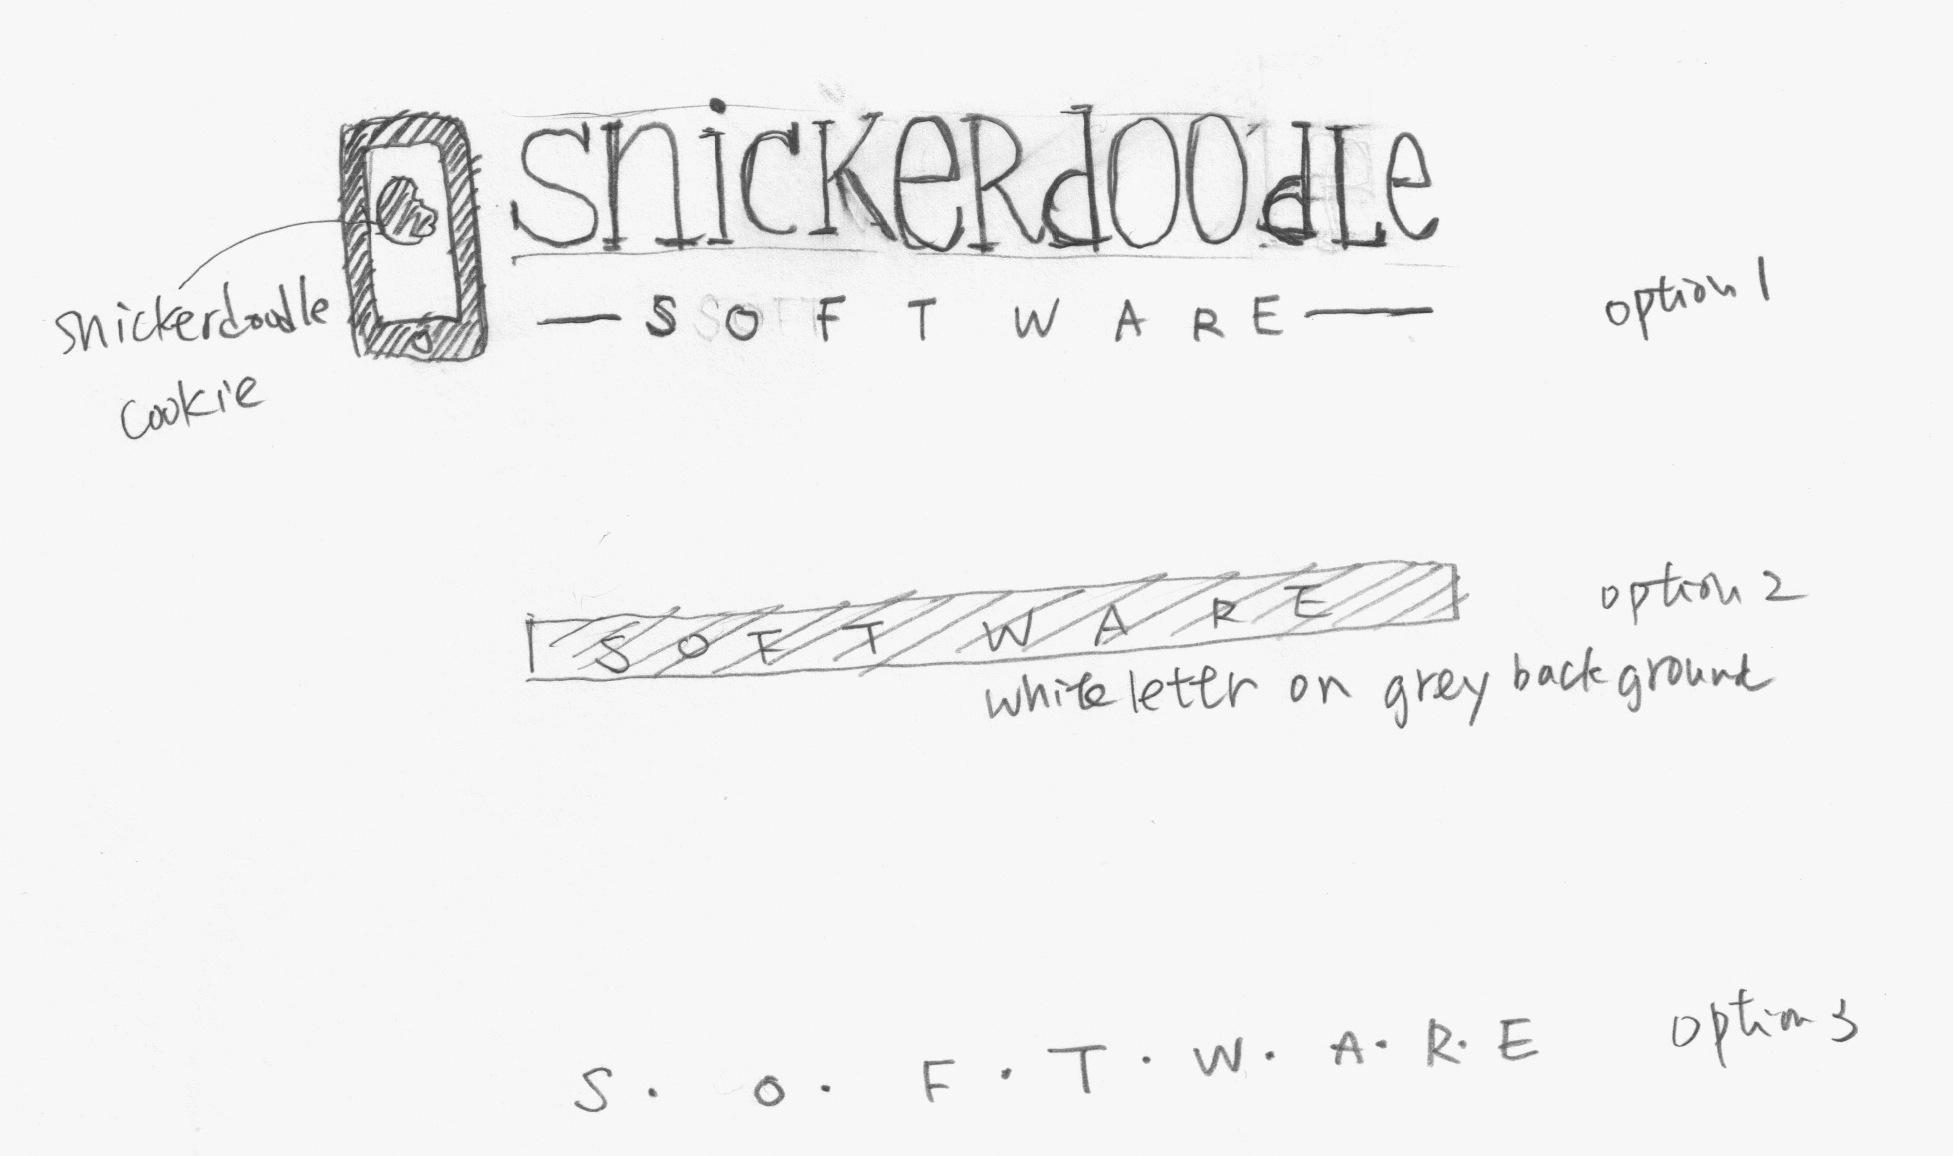 Snickerdoodle Software - image 2 - student project